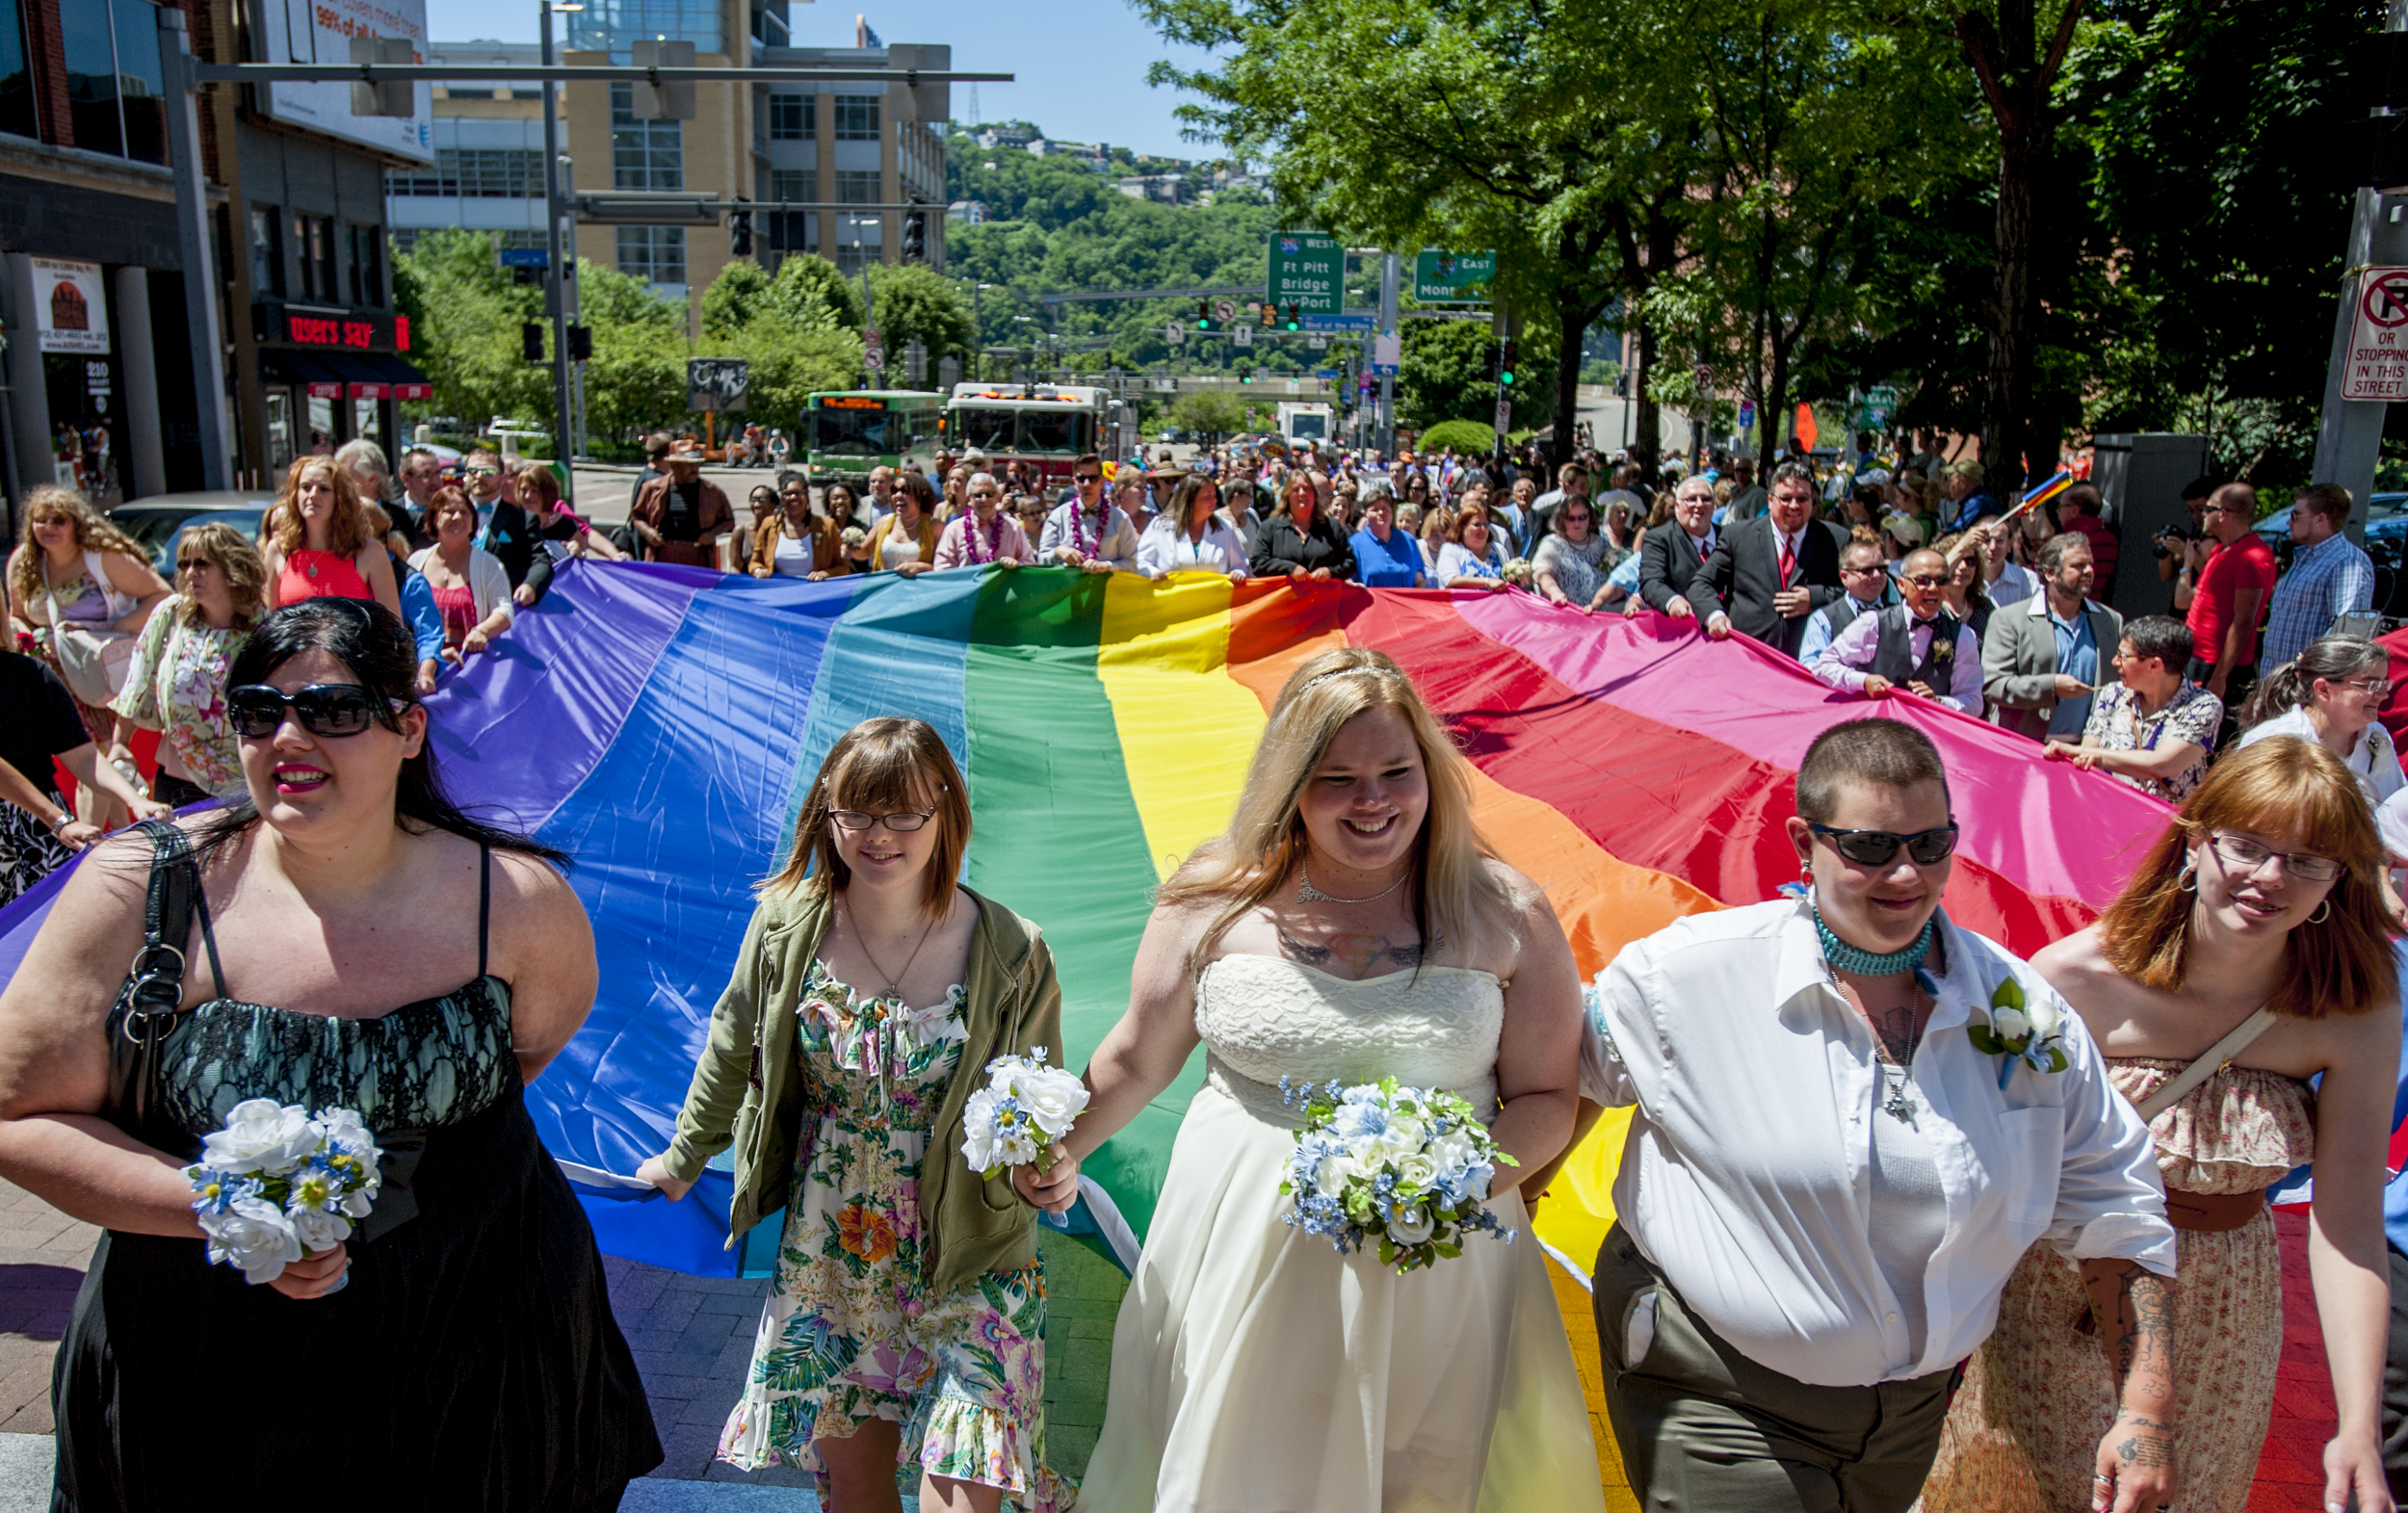 Just-married couples line the outside of a rainbow flag at the front of the 2015 Pittsburgh Pride Parade. The morning of the parade, 80 LGBTQ couples were married by Pittsburgh Mayor Bill Peduto at the city courthouse.